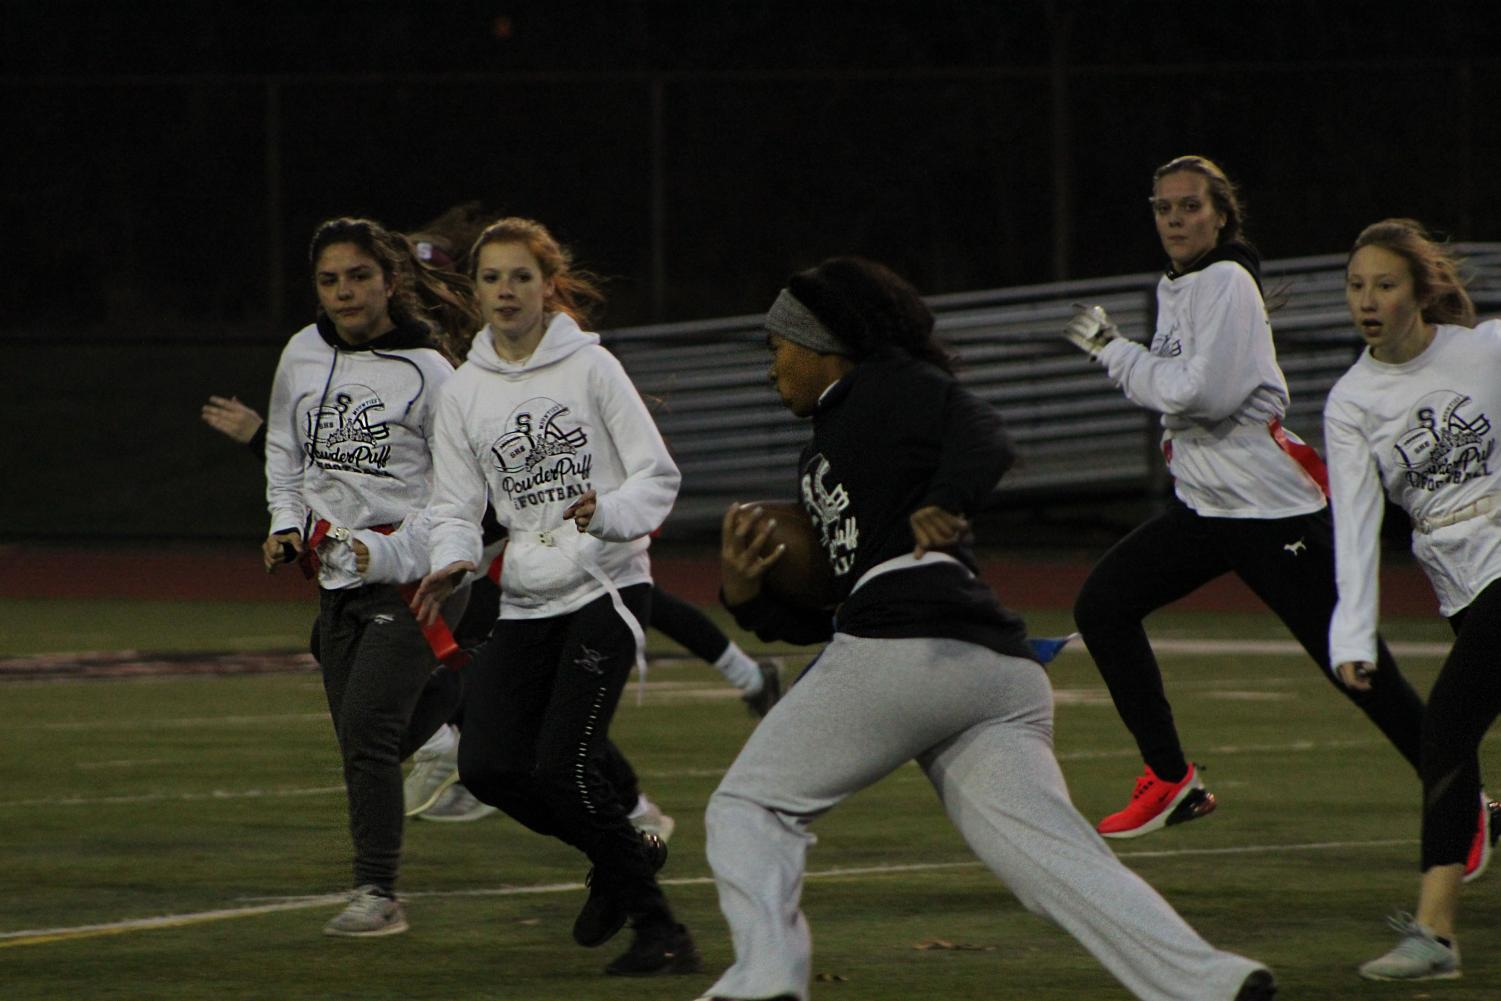 A shot taken during the Stroudsburg Powderpuff game in which girls get to play football.